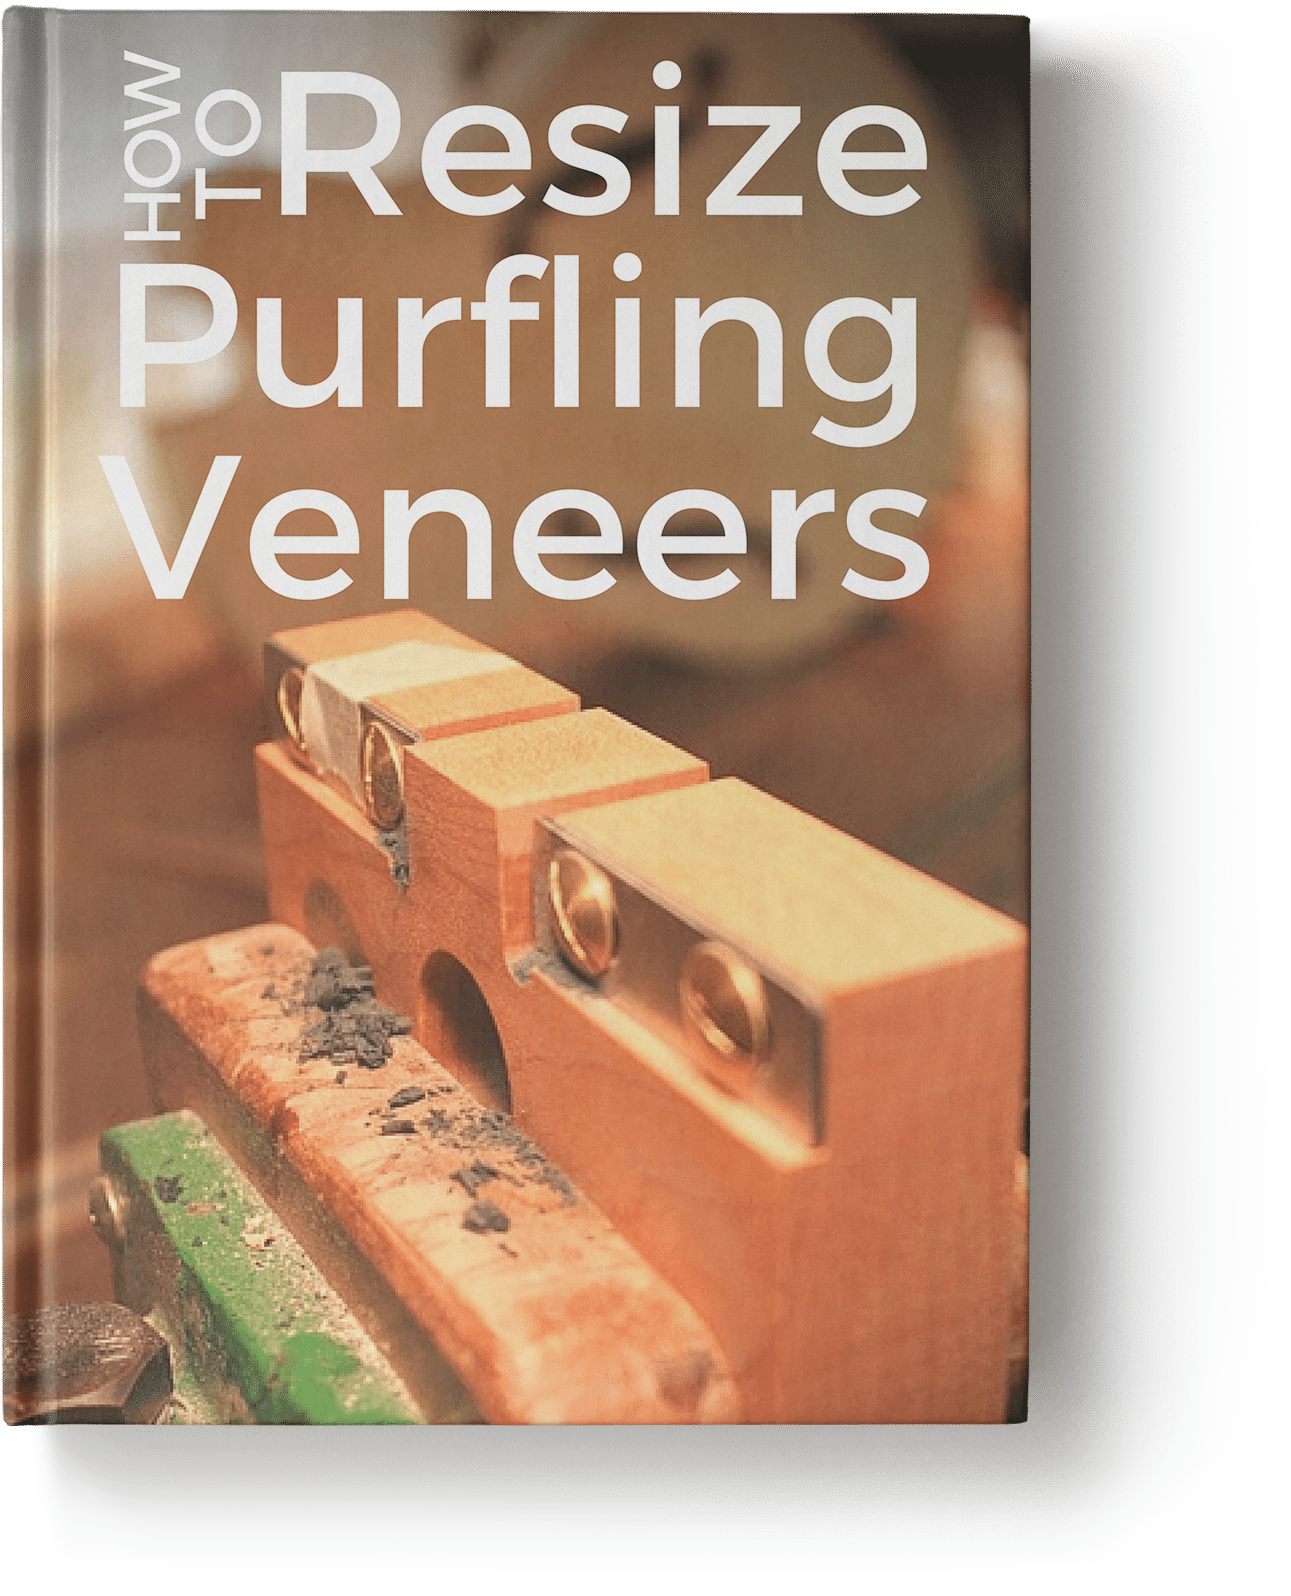 How To Resize Purfling Veneers - Book Cover